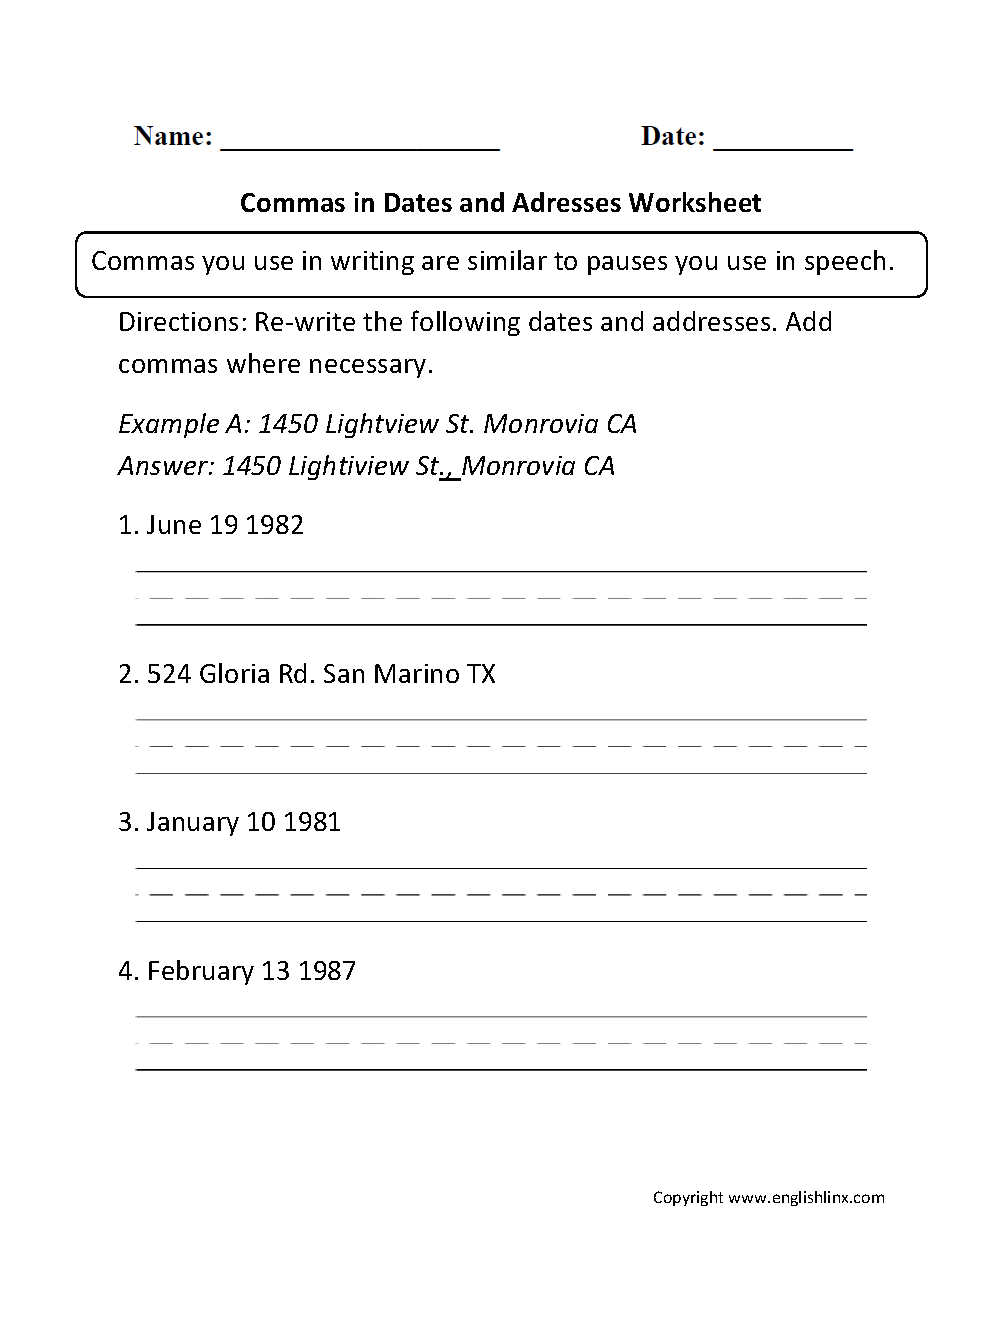 worksheet Dates Worksheet commas in dates and addresses worksheet english worksheets worksheet